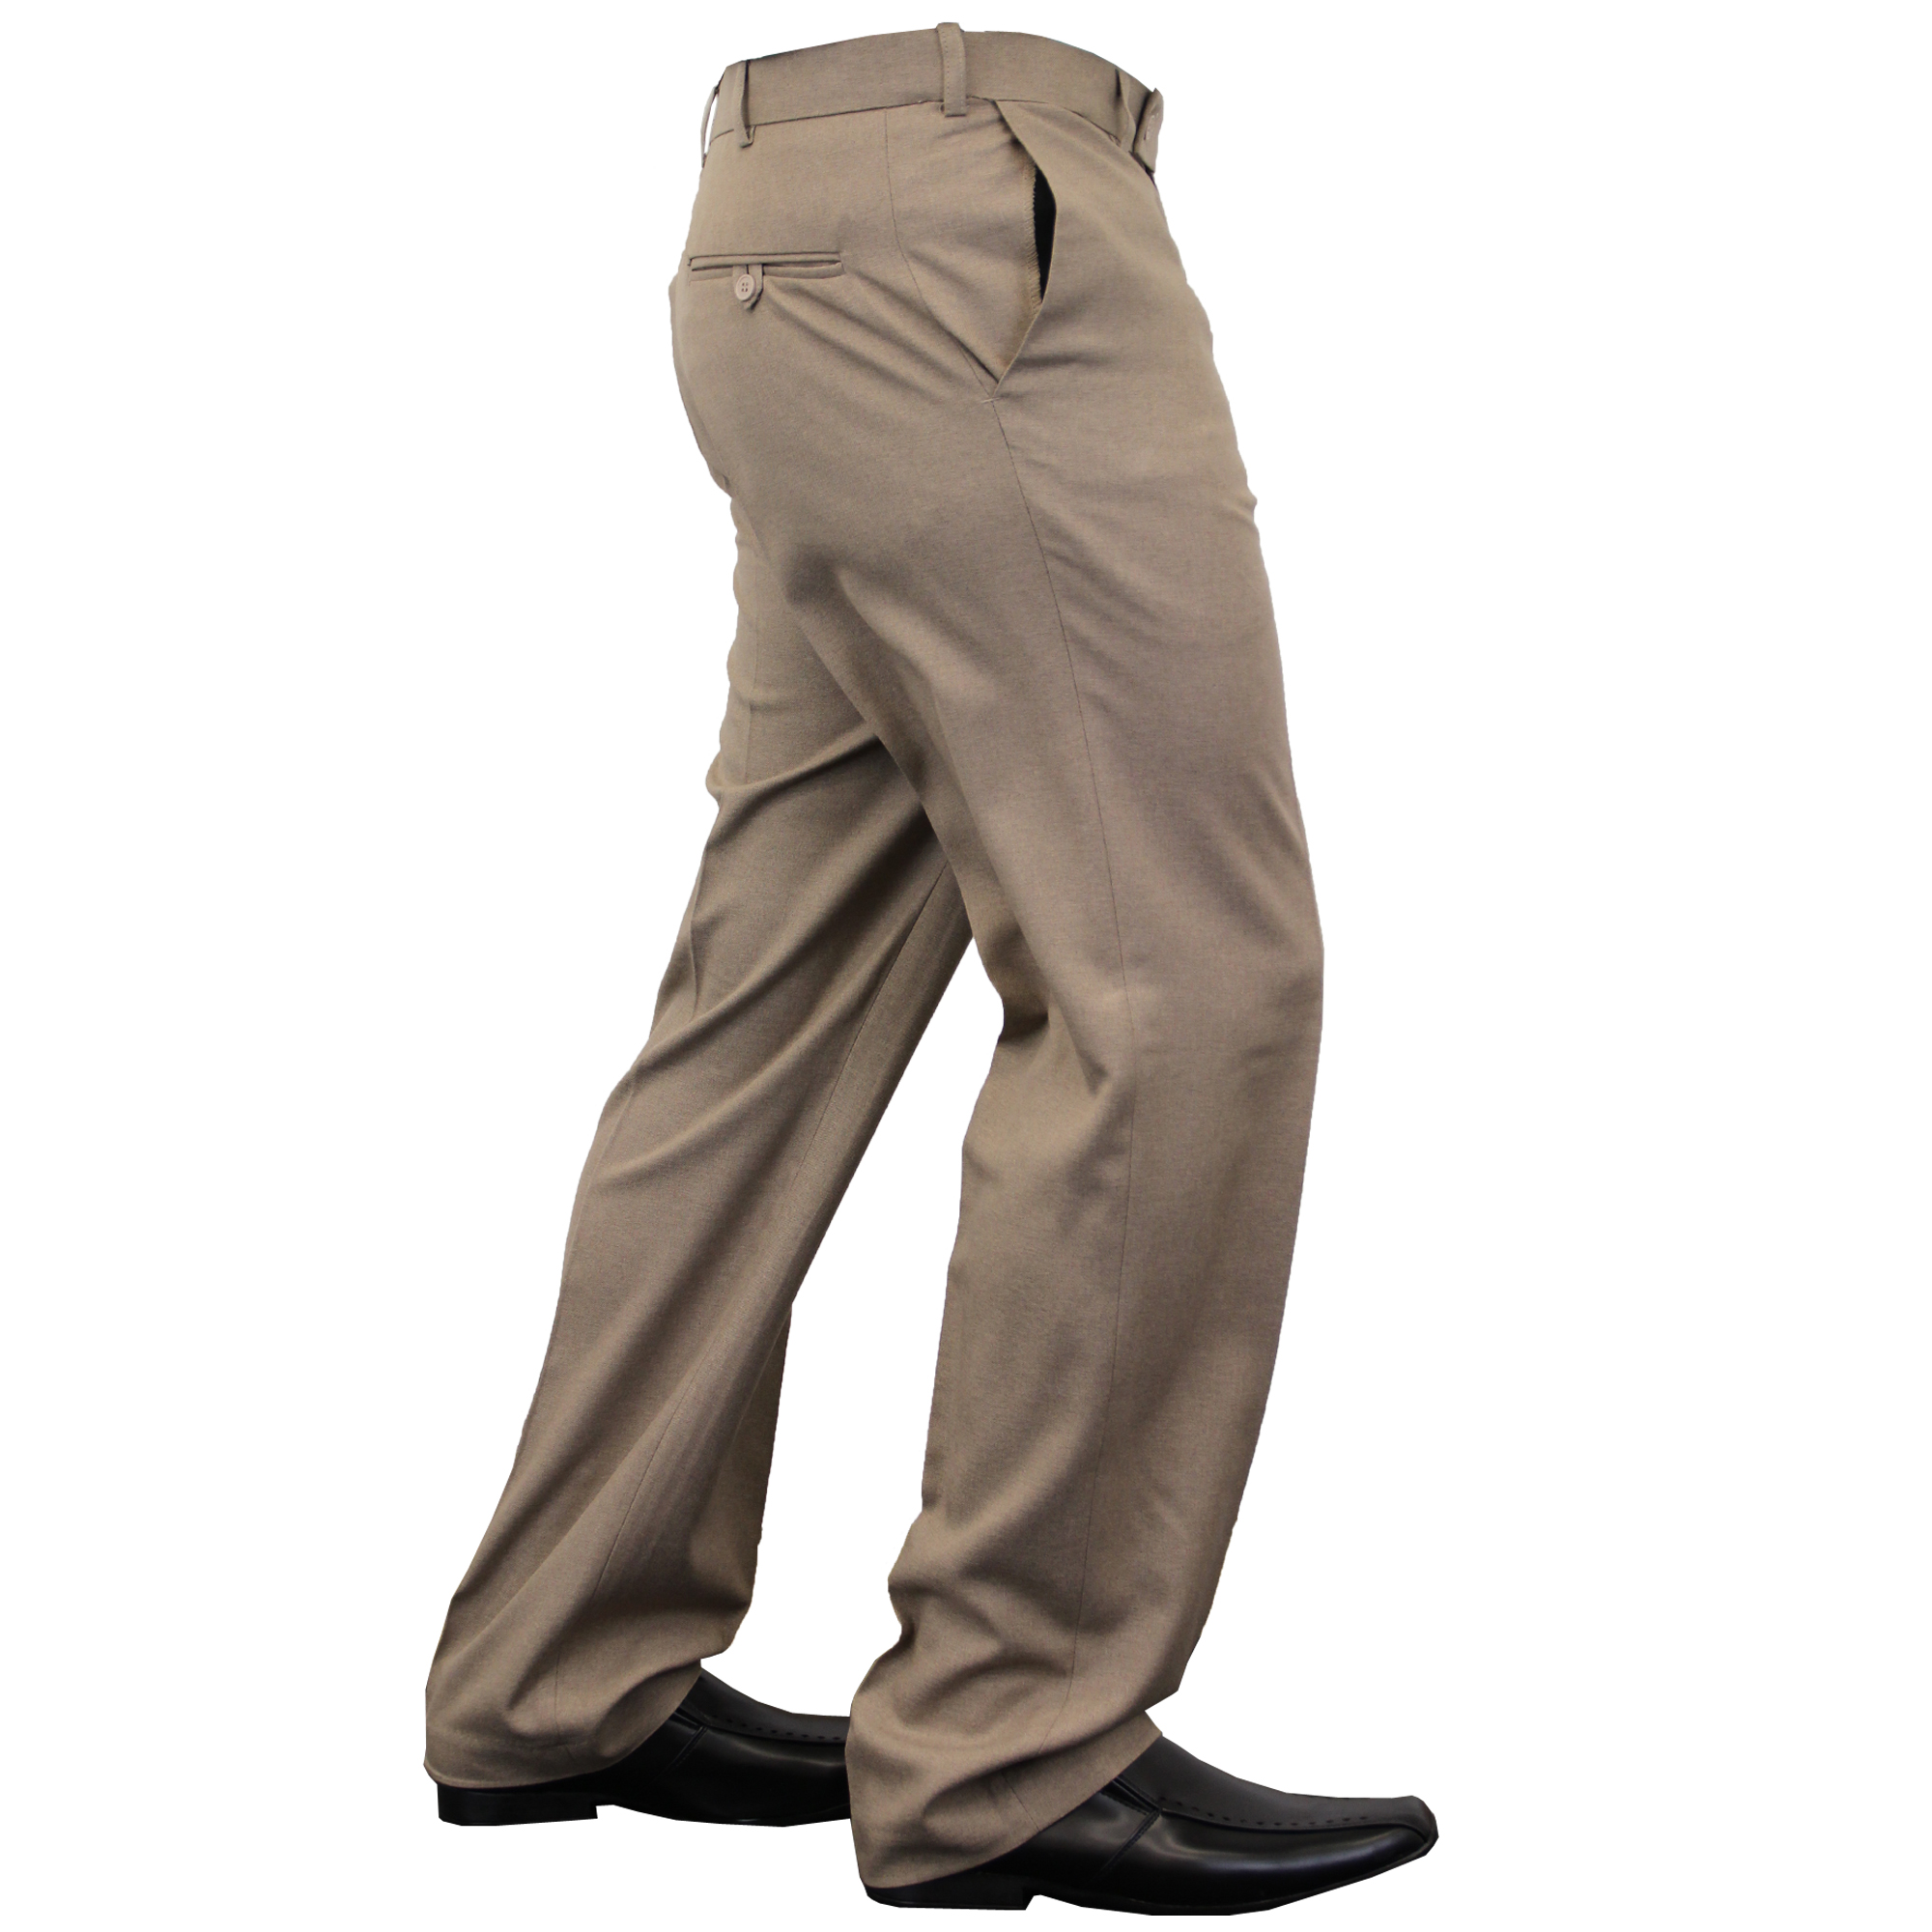 Formal Pants: Shop for Formal Pants online at best prices in India. Choose from a wide range of Formal Pants at buzz24.ga Get Free 1 or 2 day delivery with Amazon Prime, EMI offers, Cash on Delivery on eligible purchases.